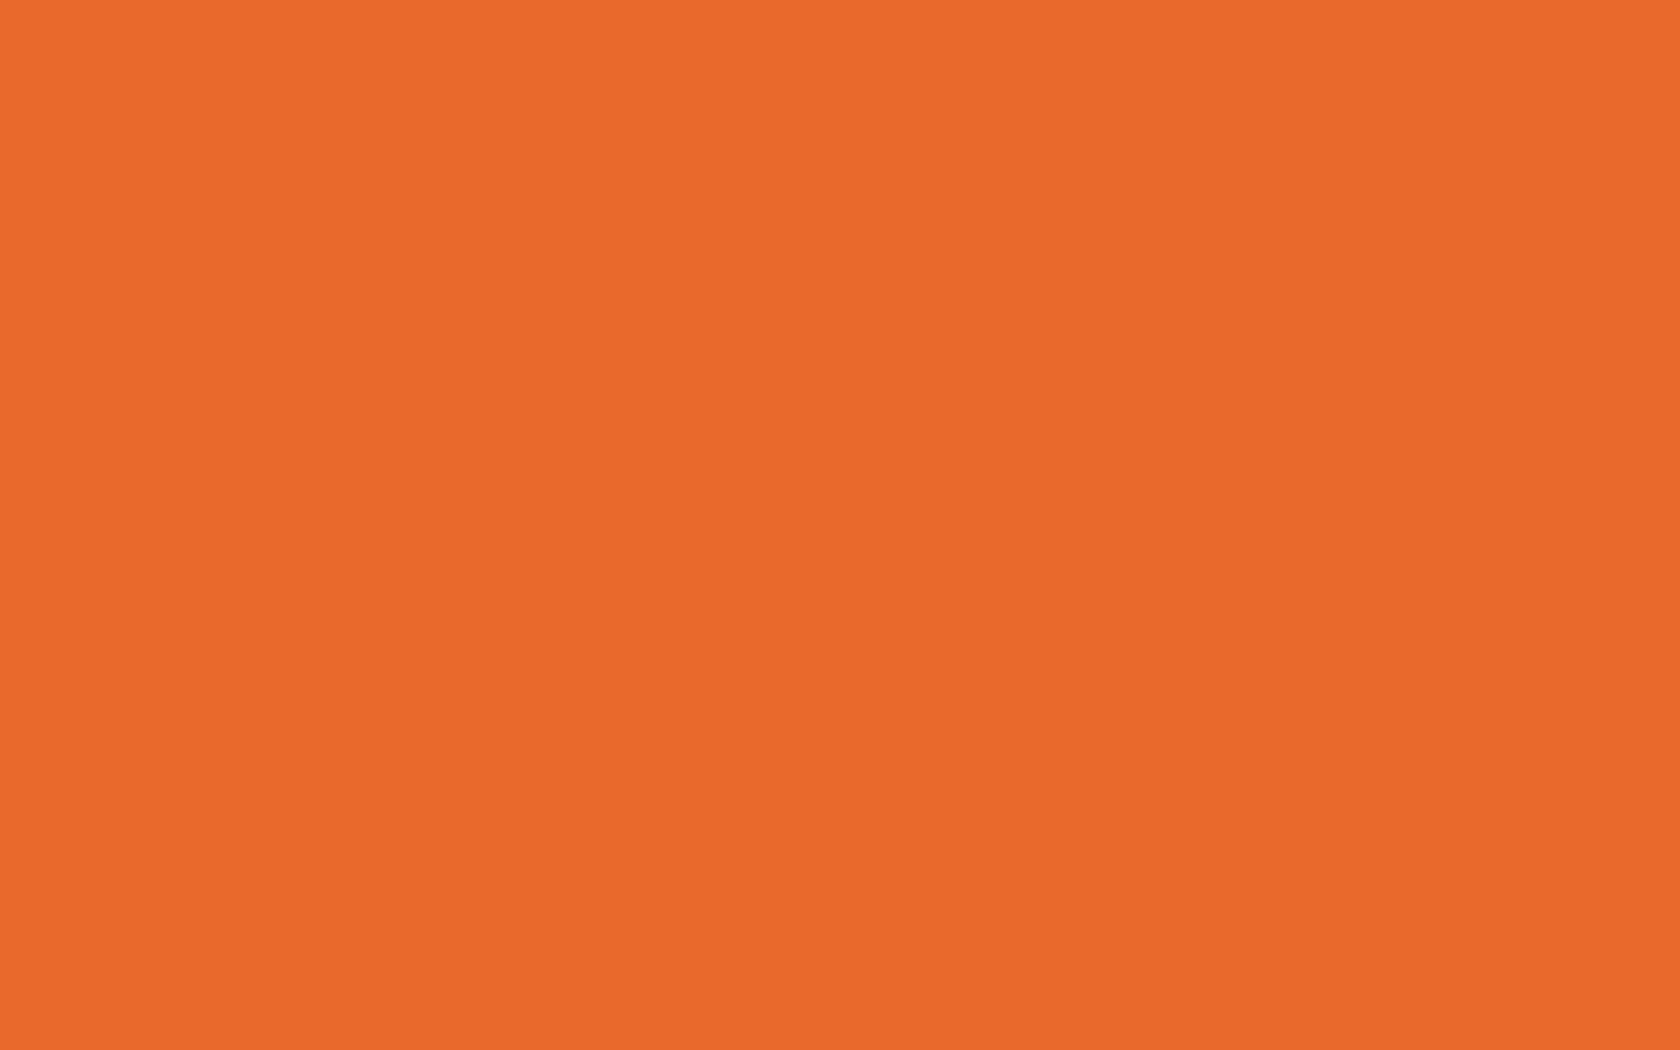 1680x1050 Deep Carrot Orange Solid Color Background